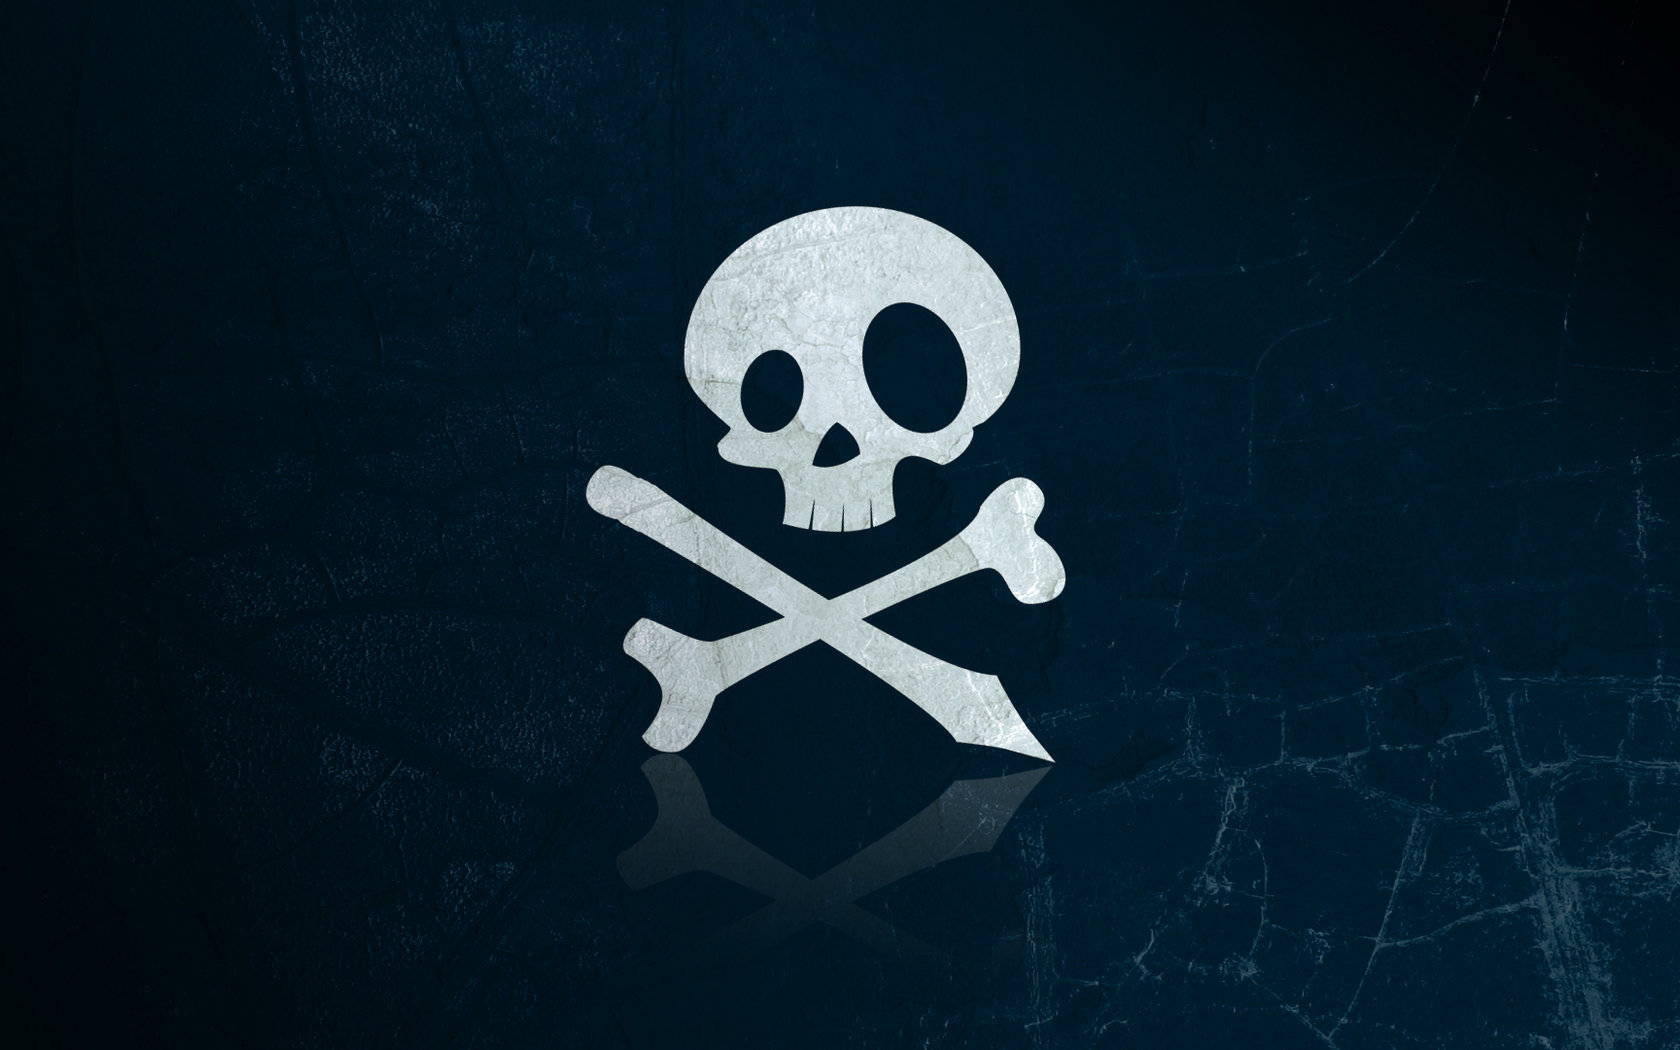 The bones and skull Jolly Roger wallpapers and images   wallpapers 1680x1050